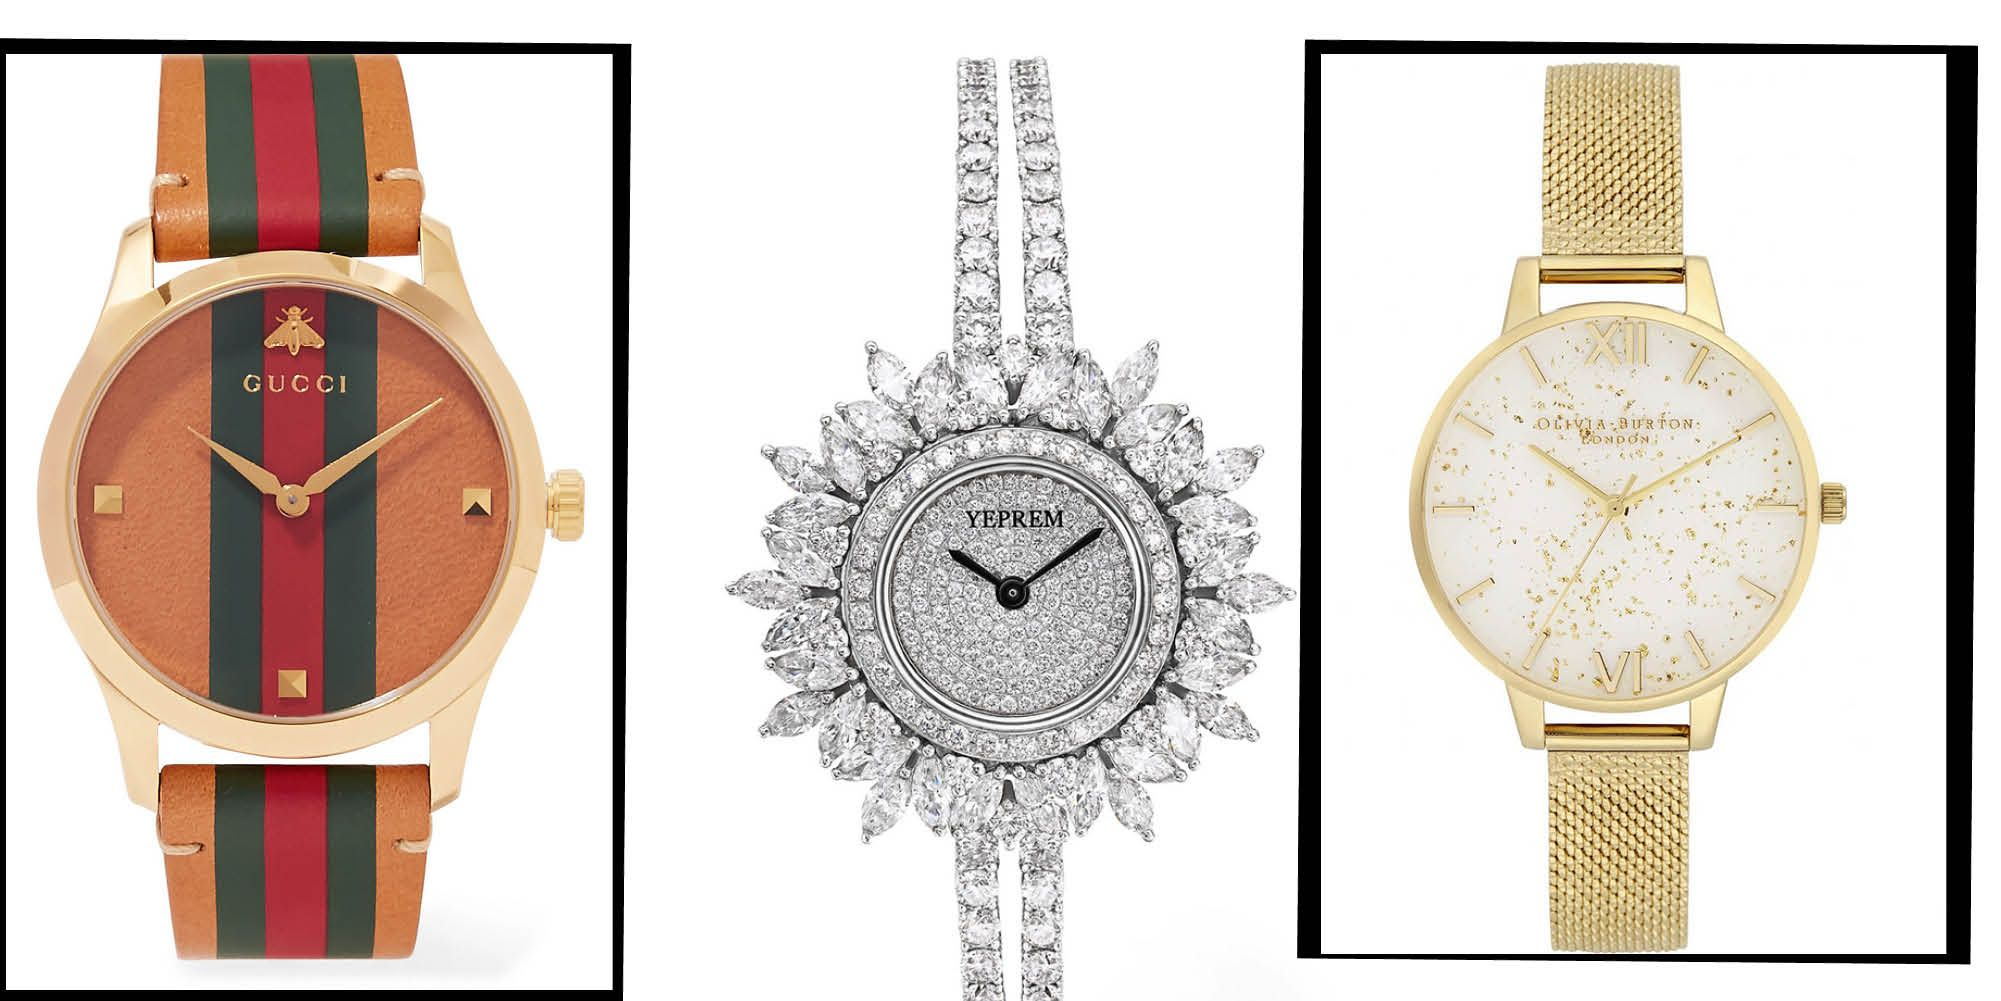 0c5792f8cb 23 Best Women's Watches 2019 - Top Fashion Watches For Women